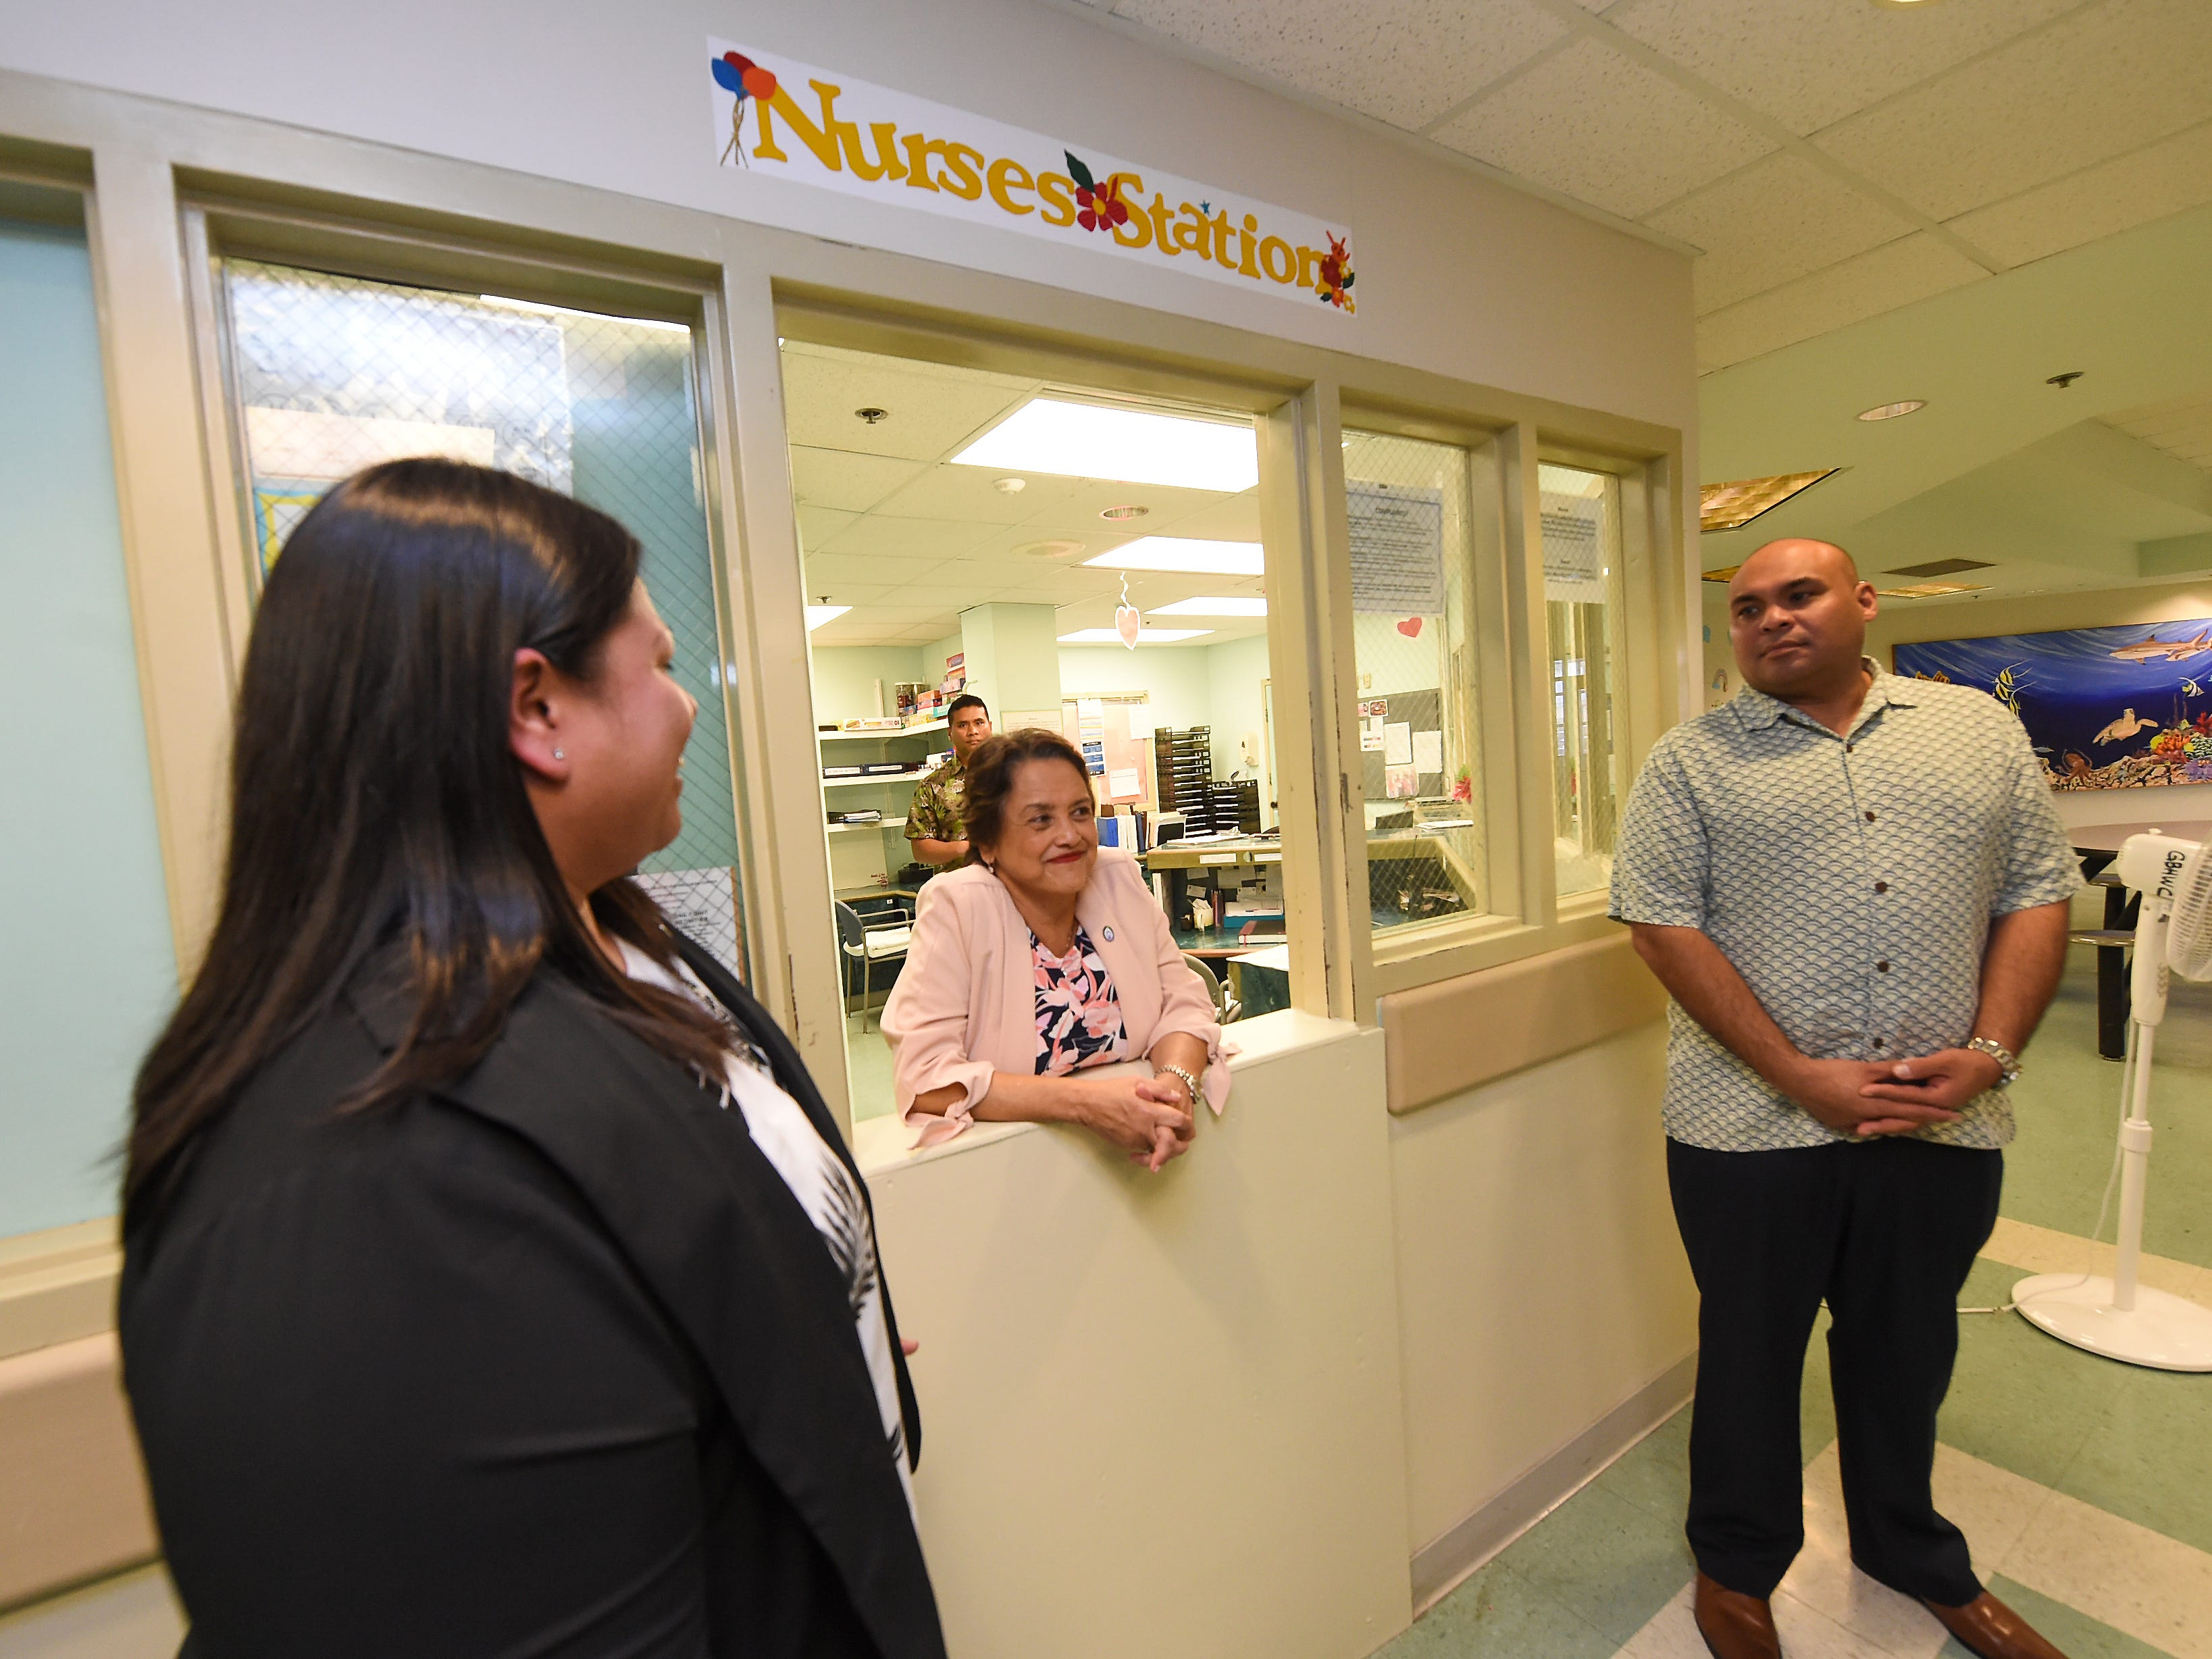 Gov. Lou Leon Guerrero, center, Carissa Pangelinan, deputy director of the Guam Behavioral Health and Wellness Center, and Lt. Gov. Josh Tenorio, stand at the facility's nurses station during a tour on Feb. 12, 2019.